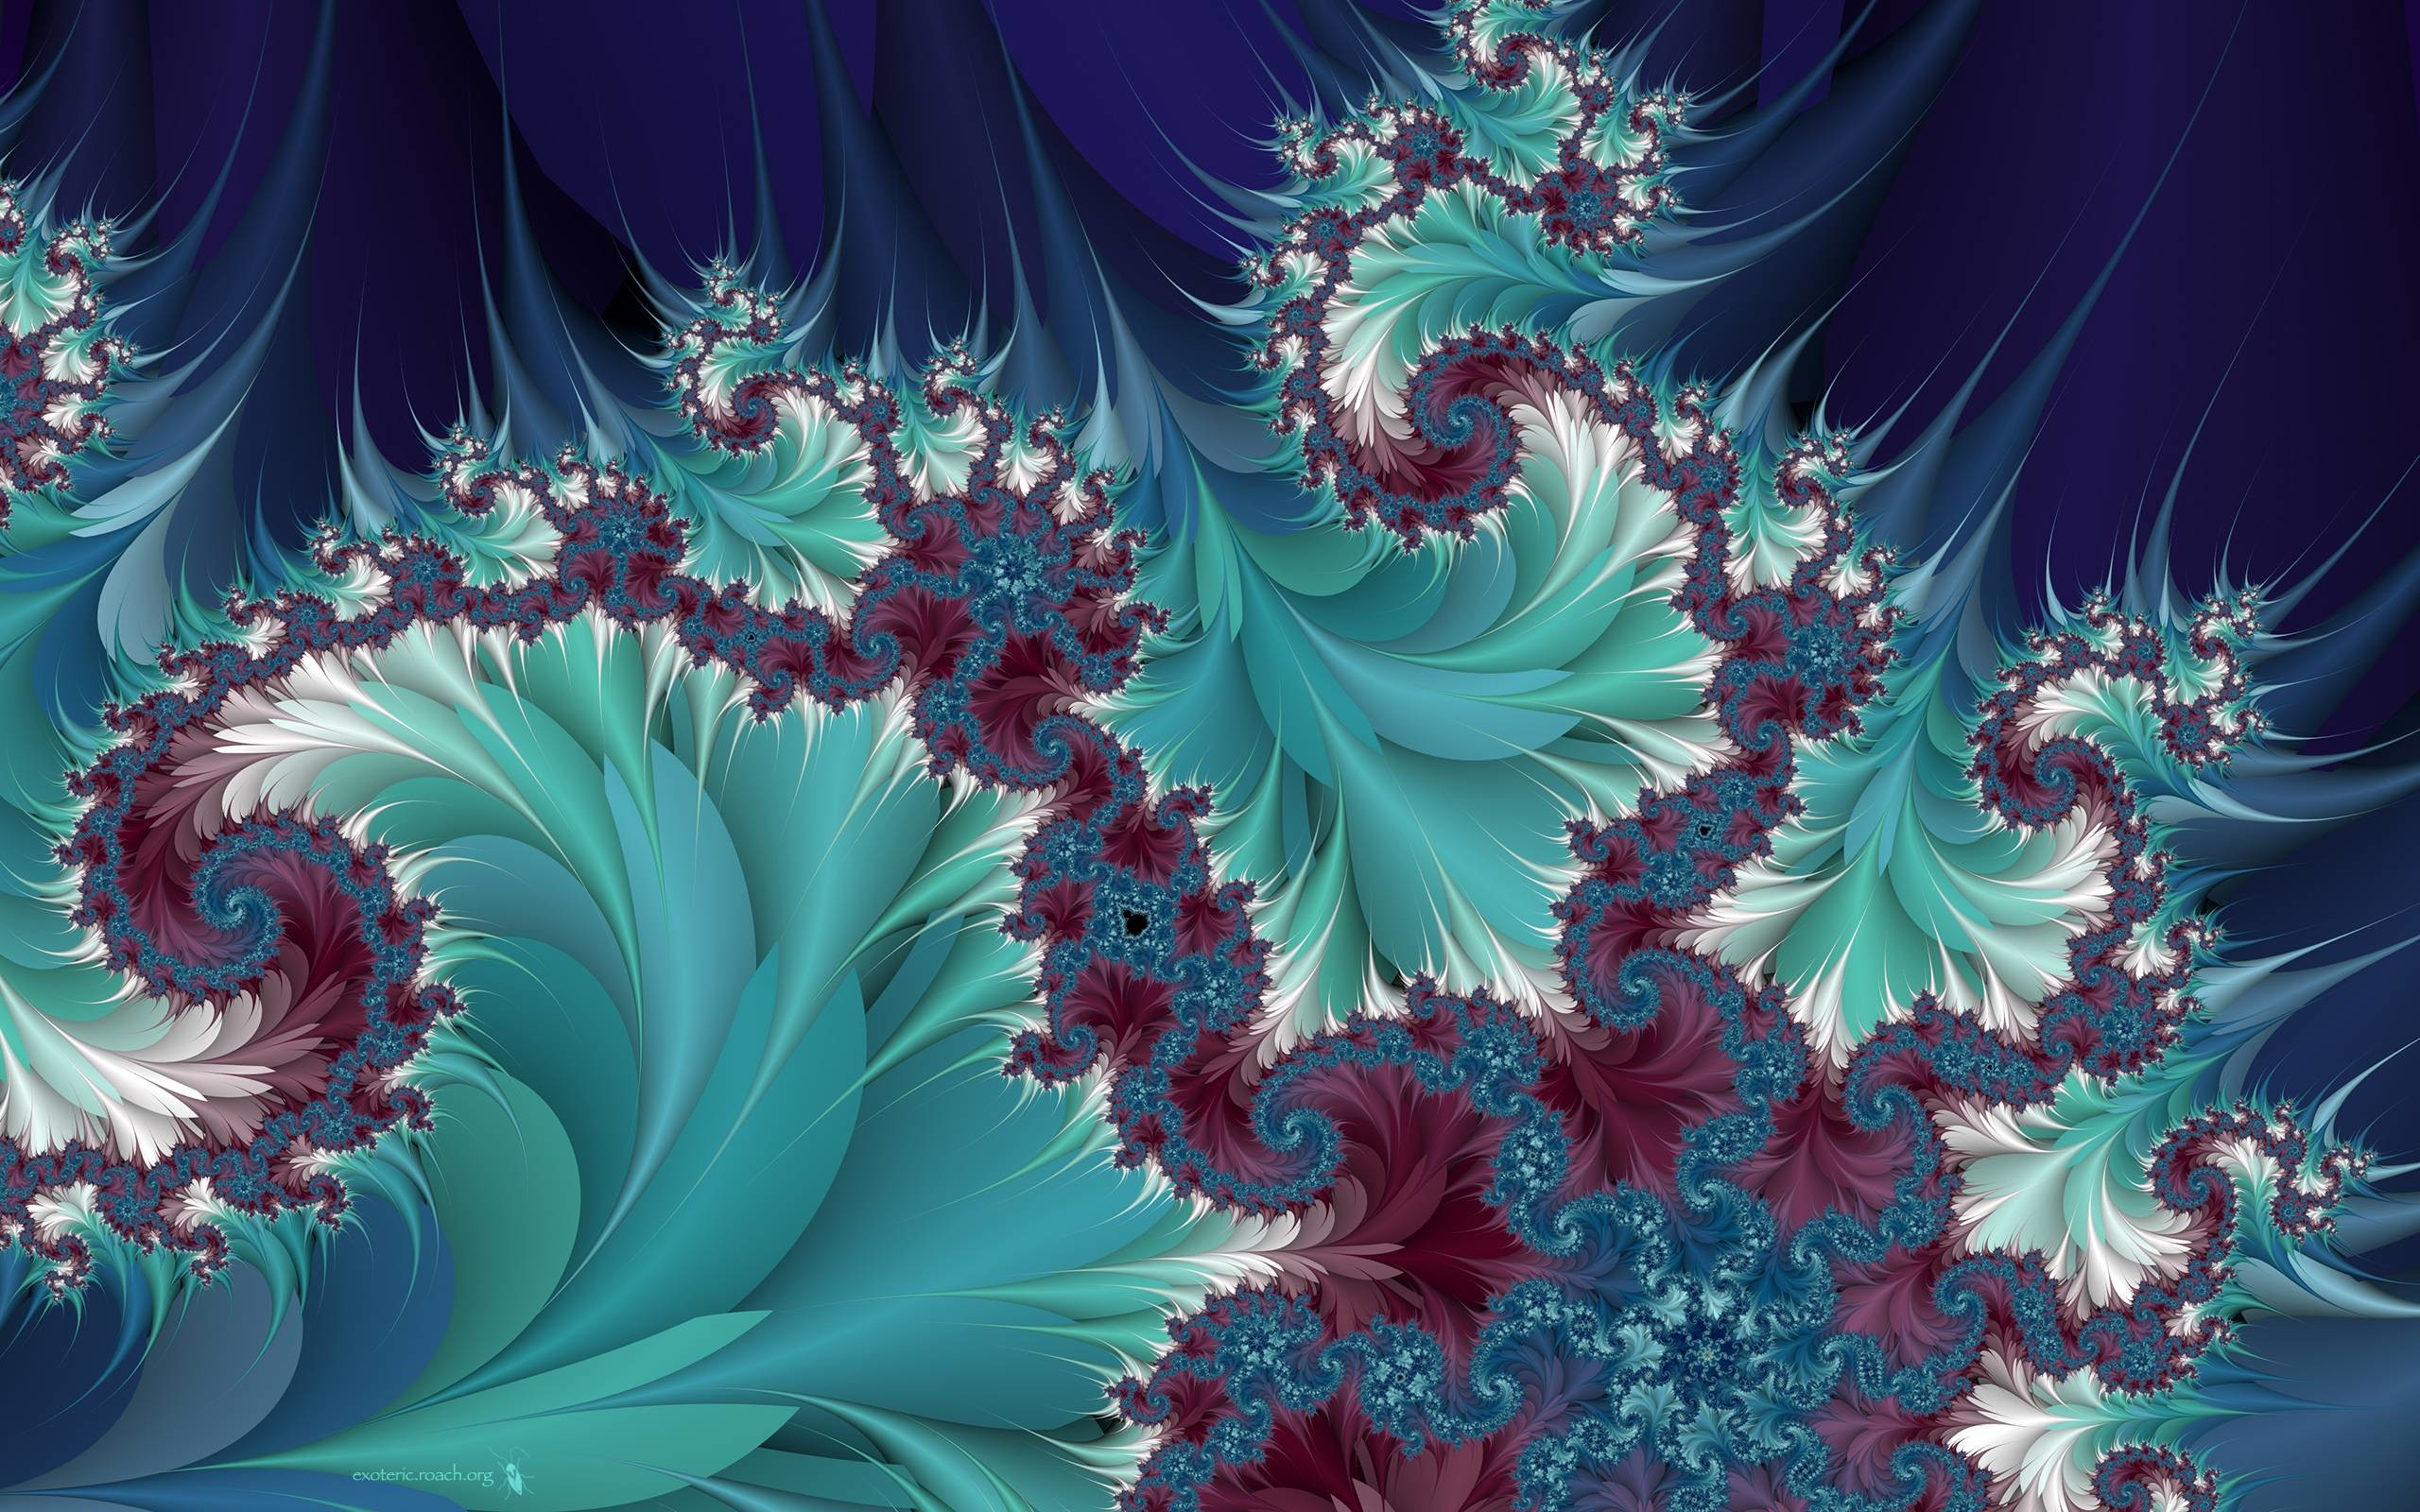 wallpaper.wiki-HD-Fractal-Images-PIC-WPE004984